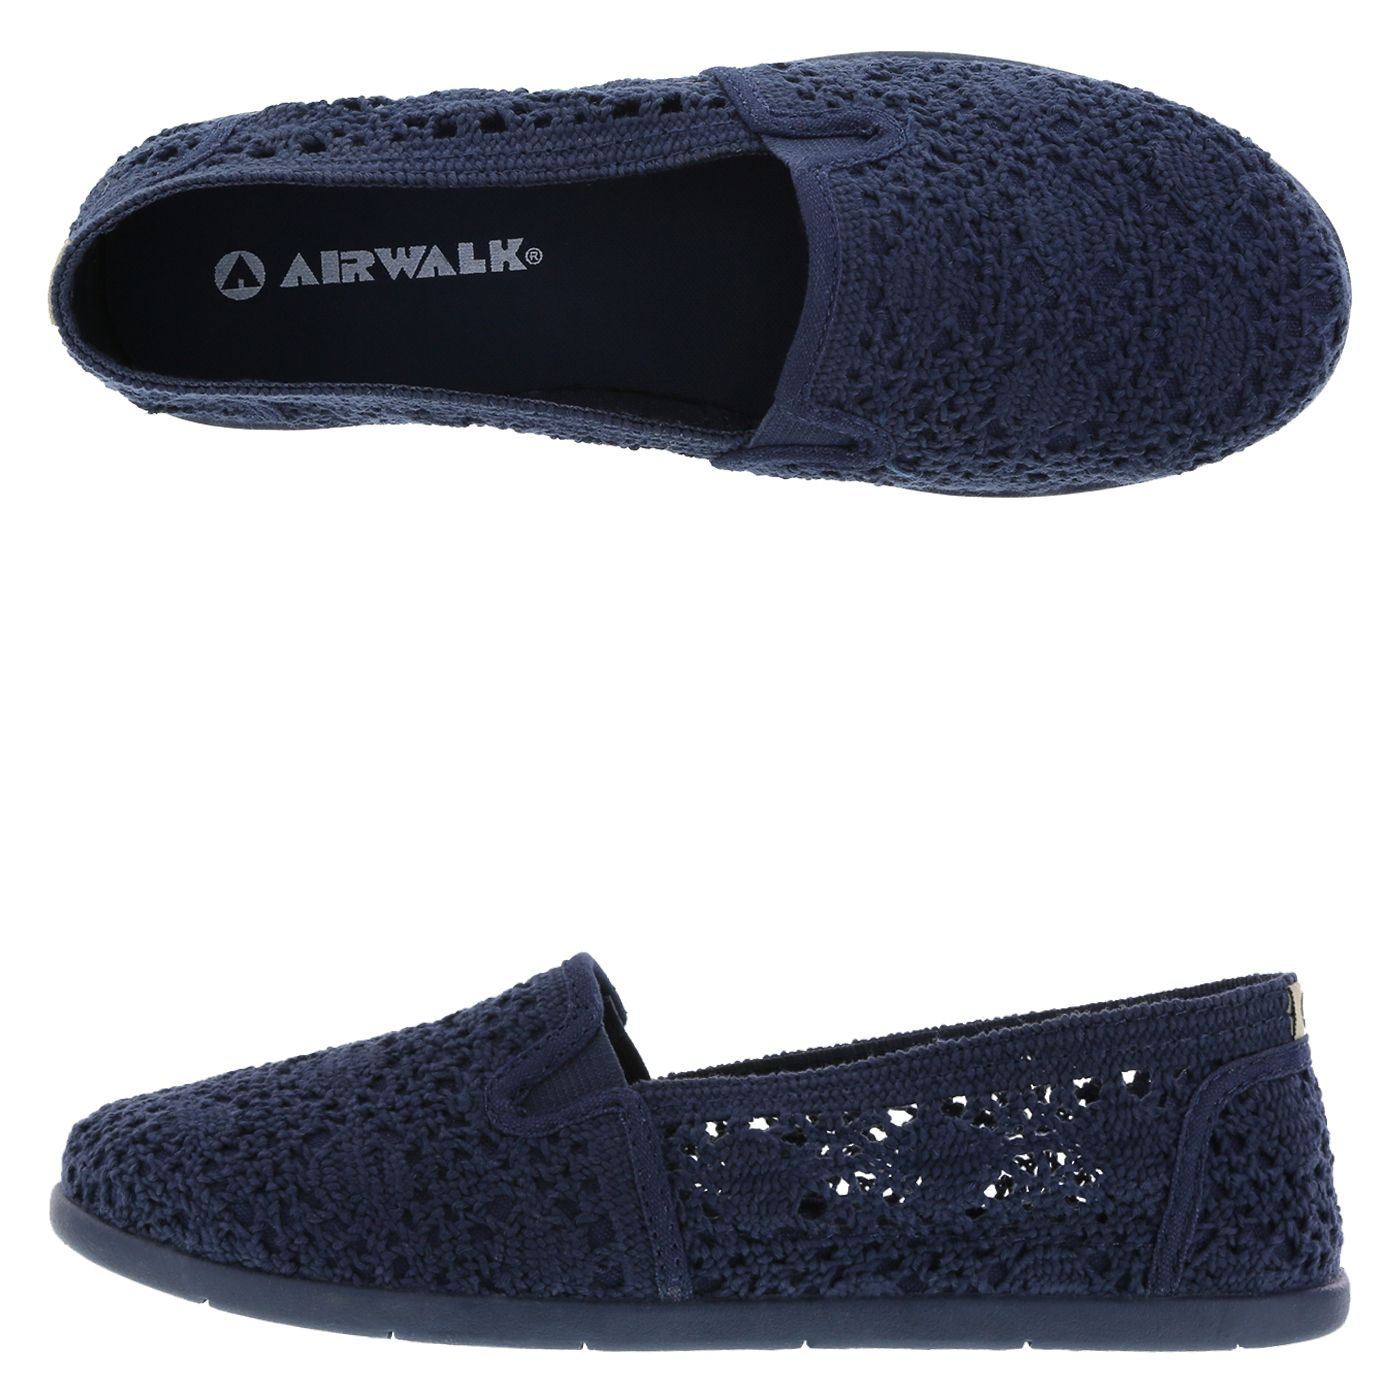 24a9d2f2851 Add a touch of Navy with the Crochet Dream Slip-On